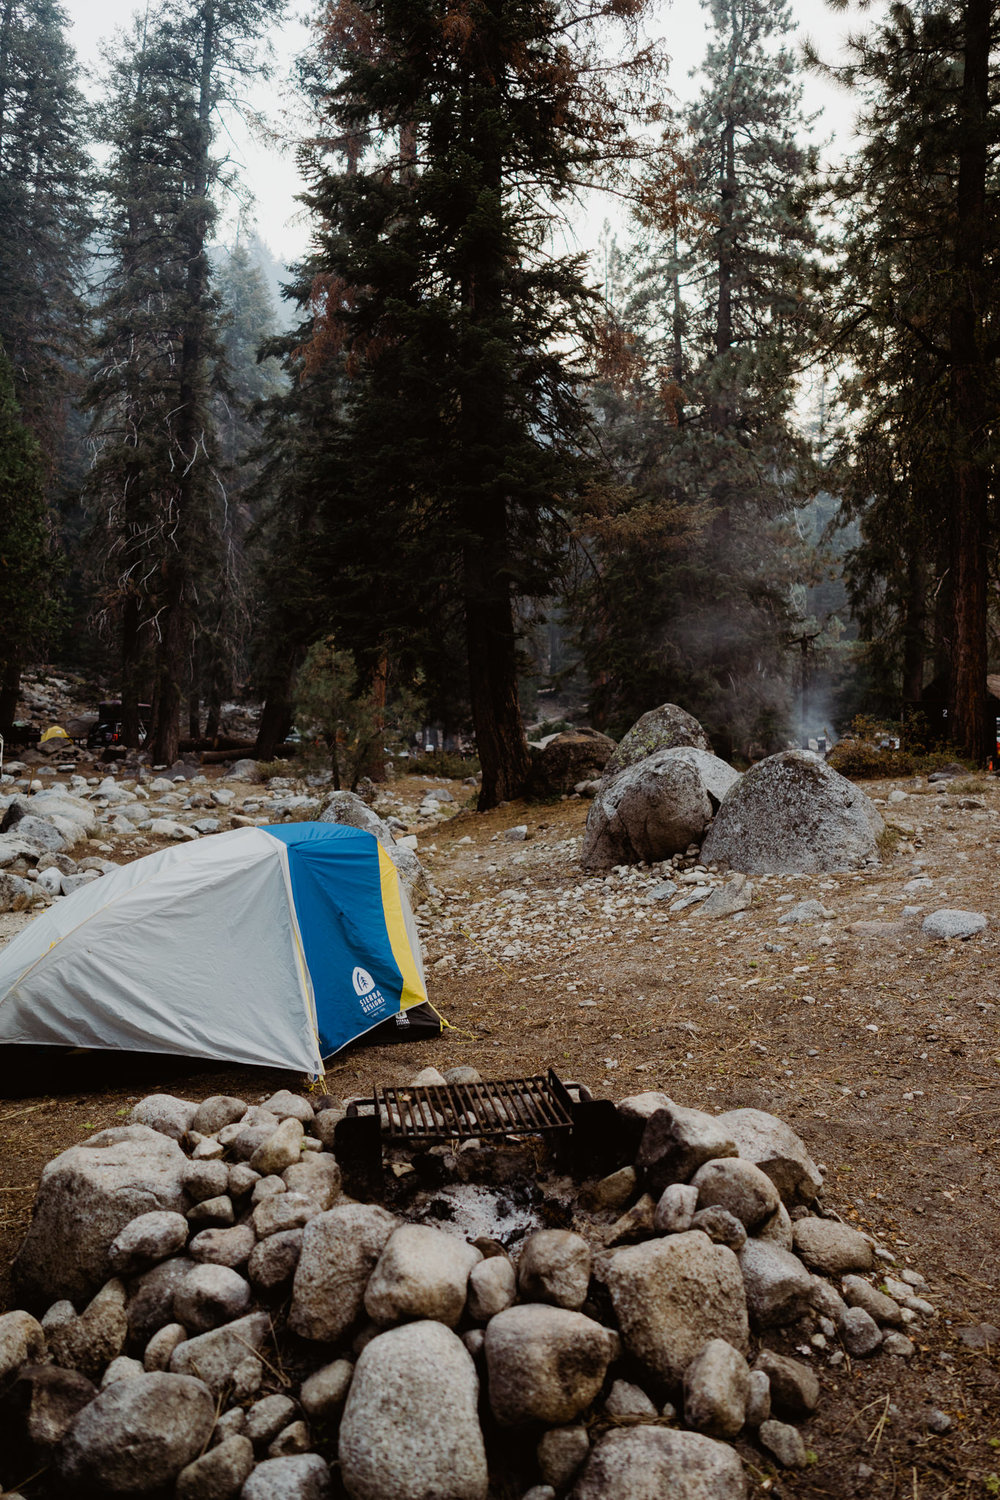 20170903-Shoestring-Adventures-Camping-Sequoia-17.jpg